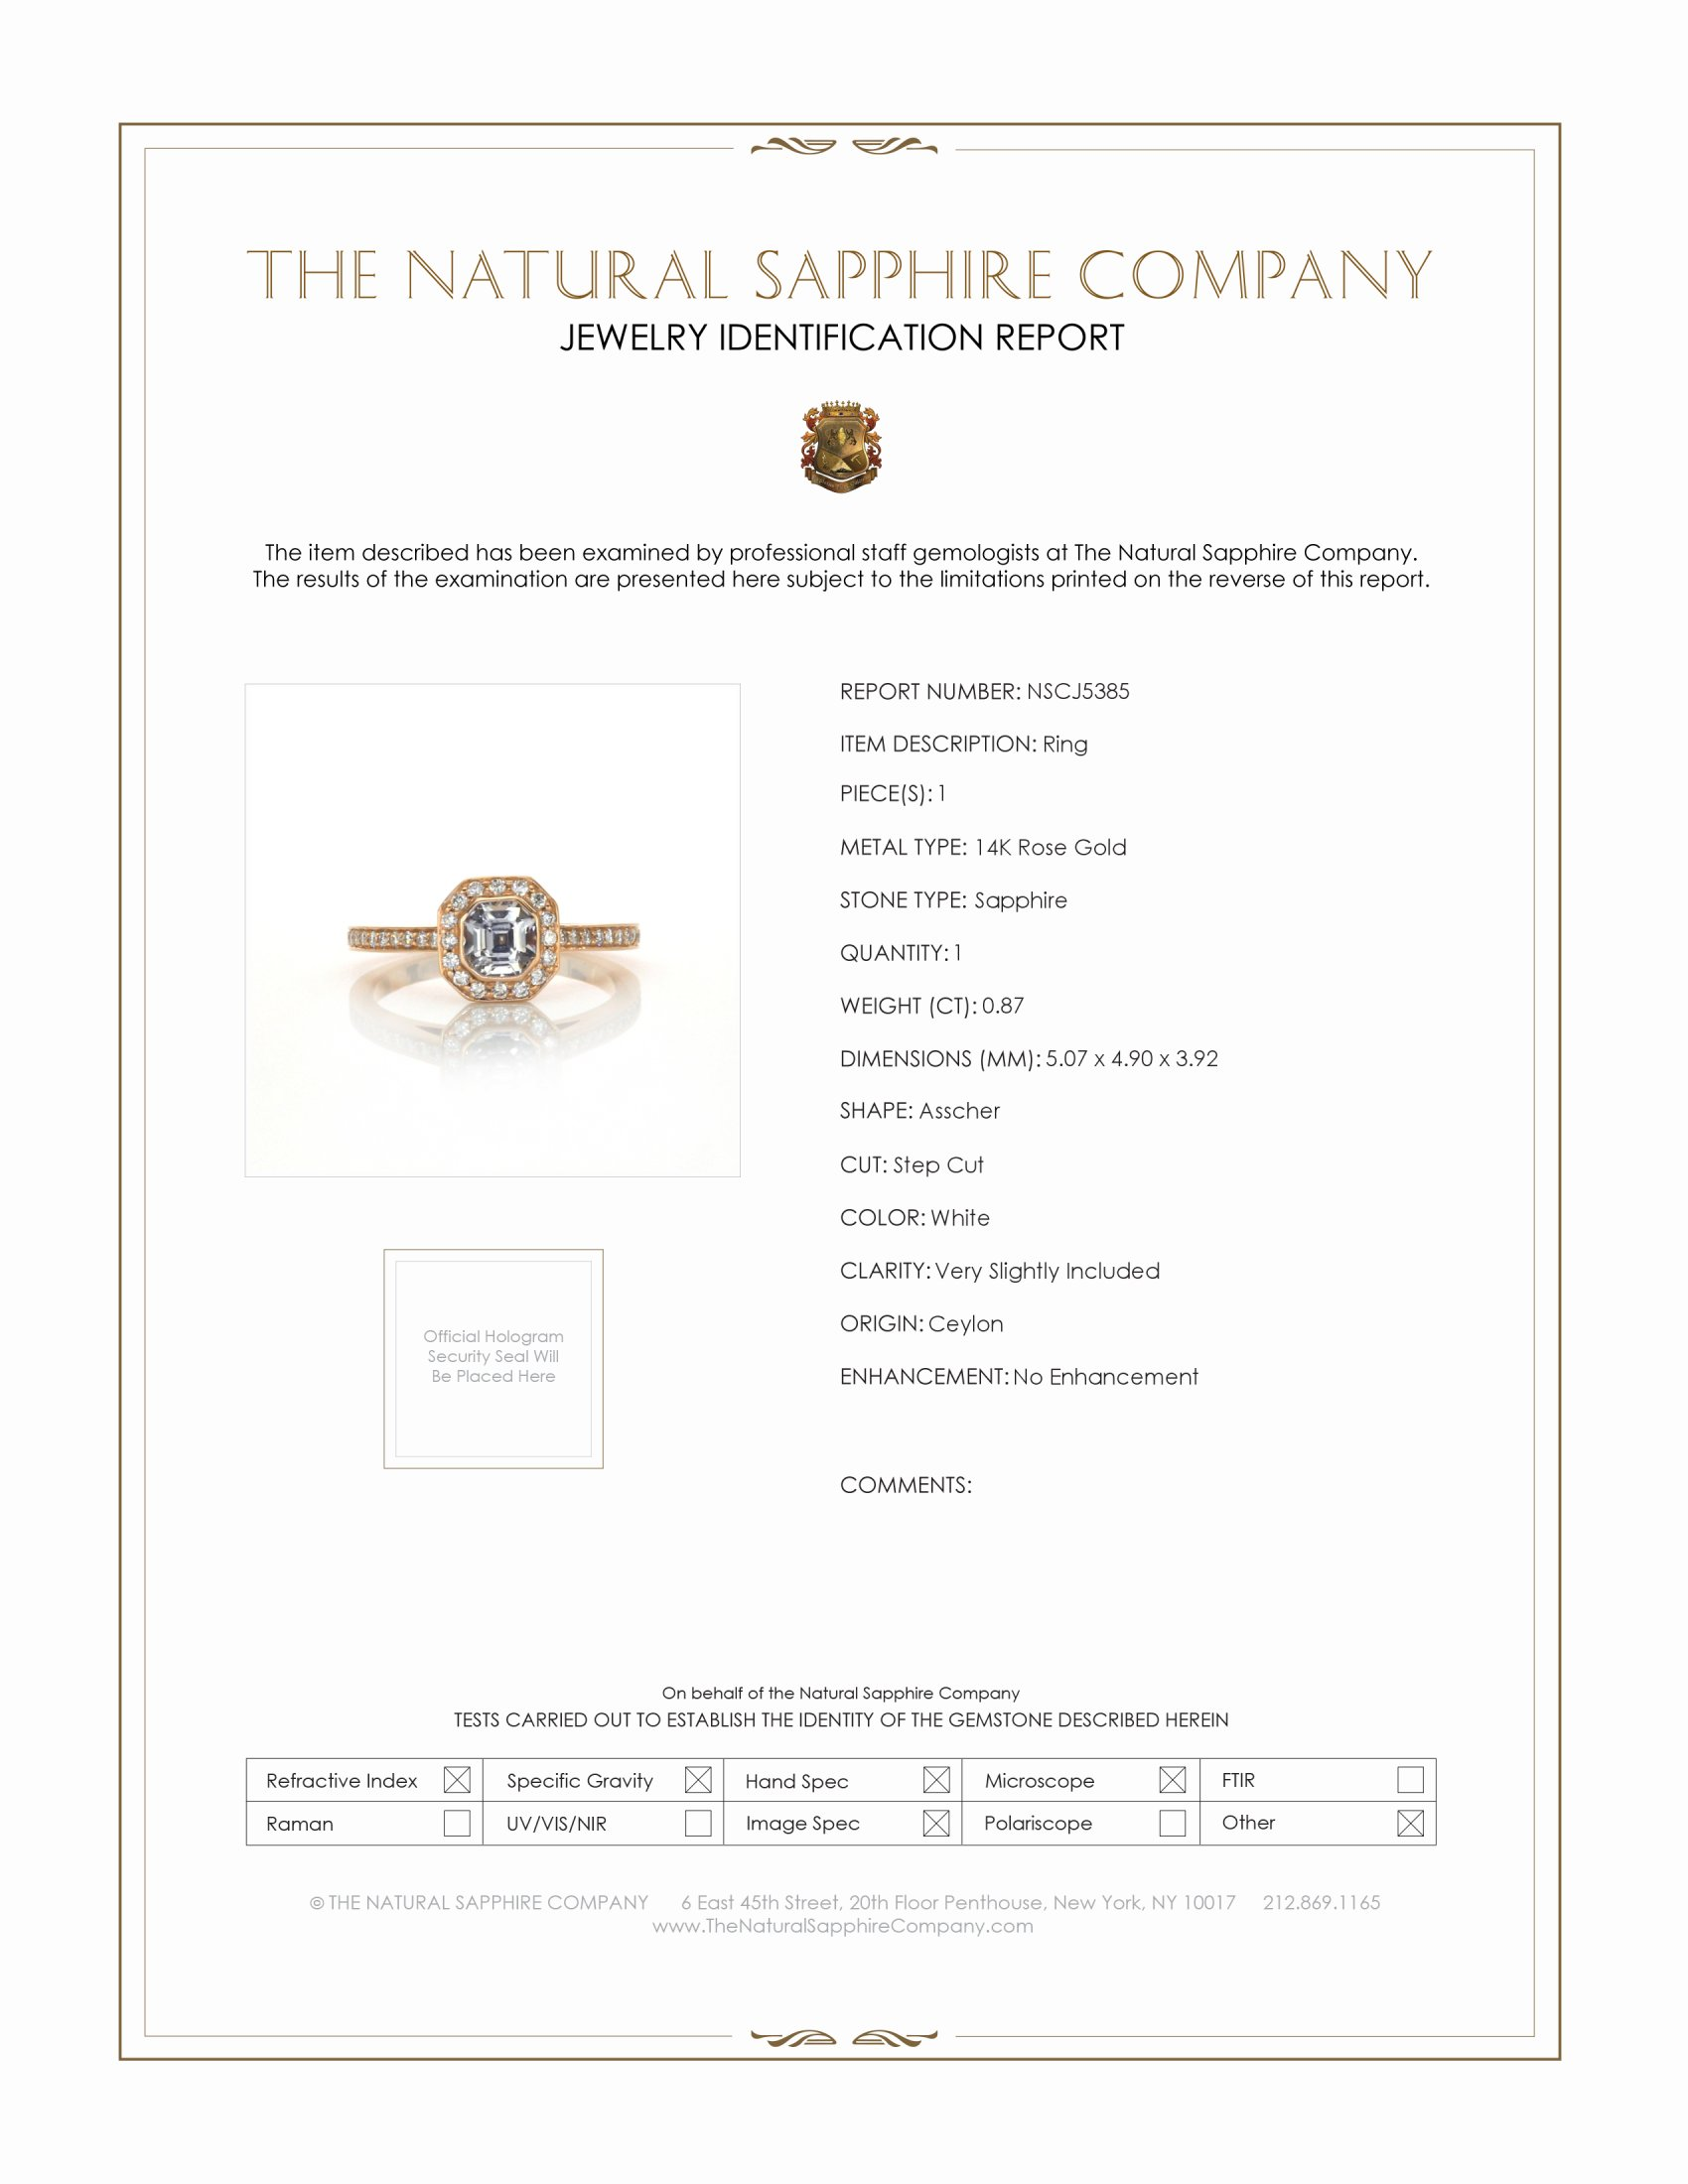 0.87ct White Sapphire Ring Certification